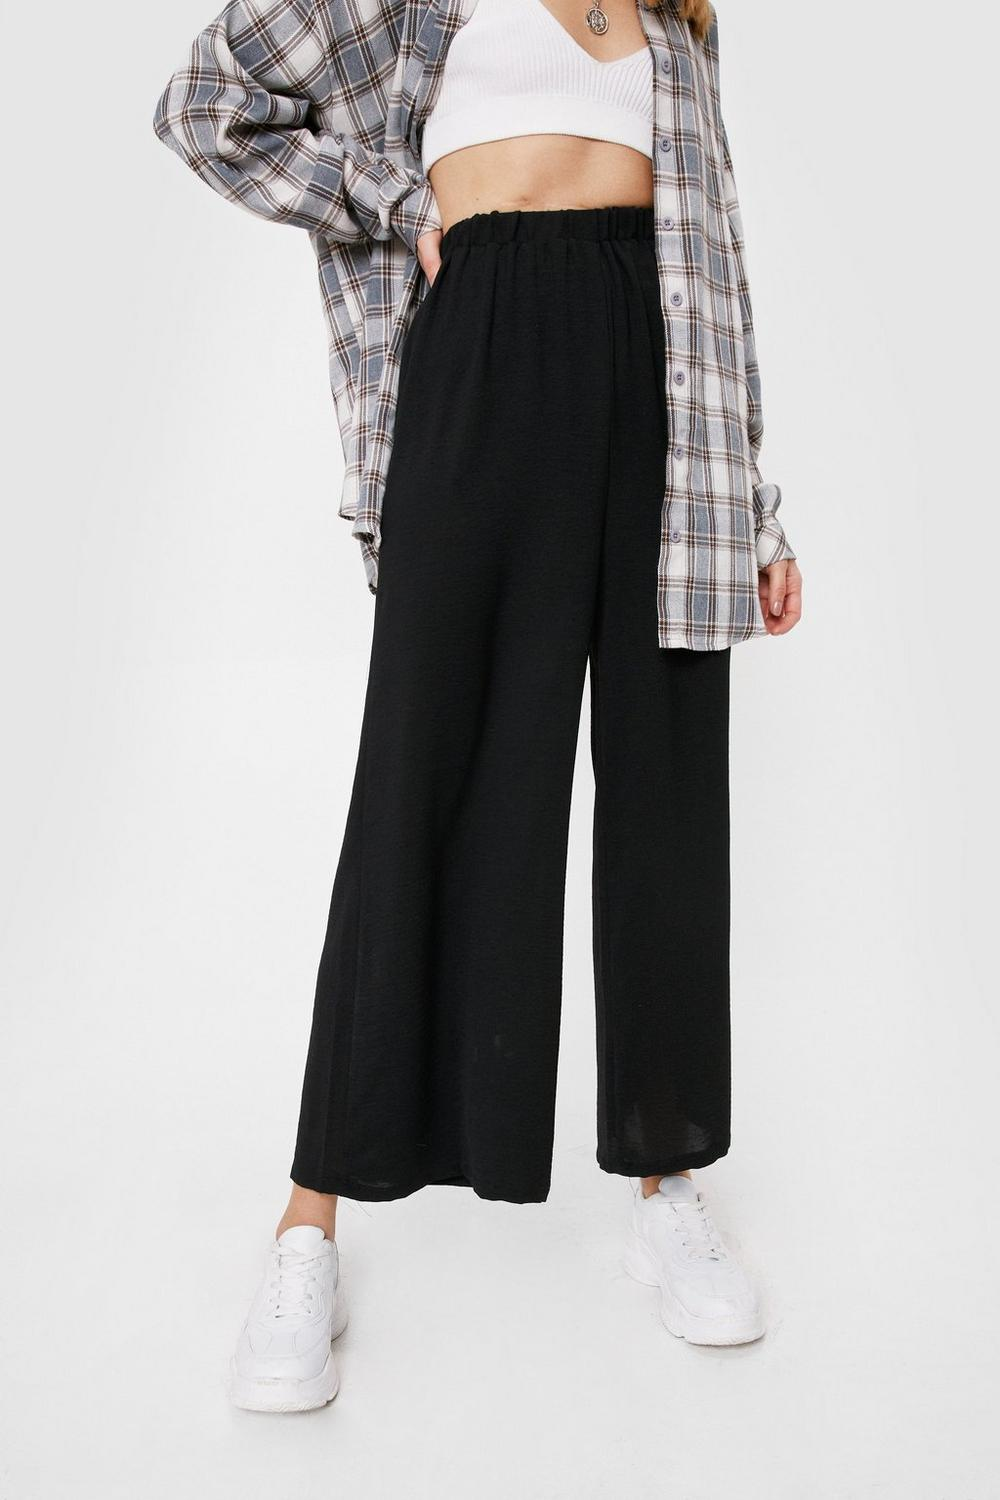 6aa2cc5058 Hit the Big Time Wide-Leg Pants | Shop Clothes at Nasty Gal!